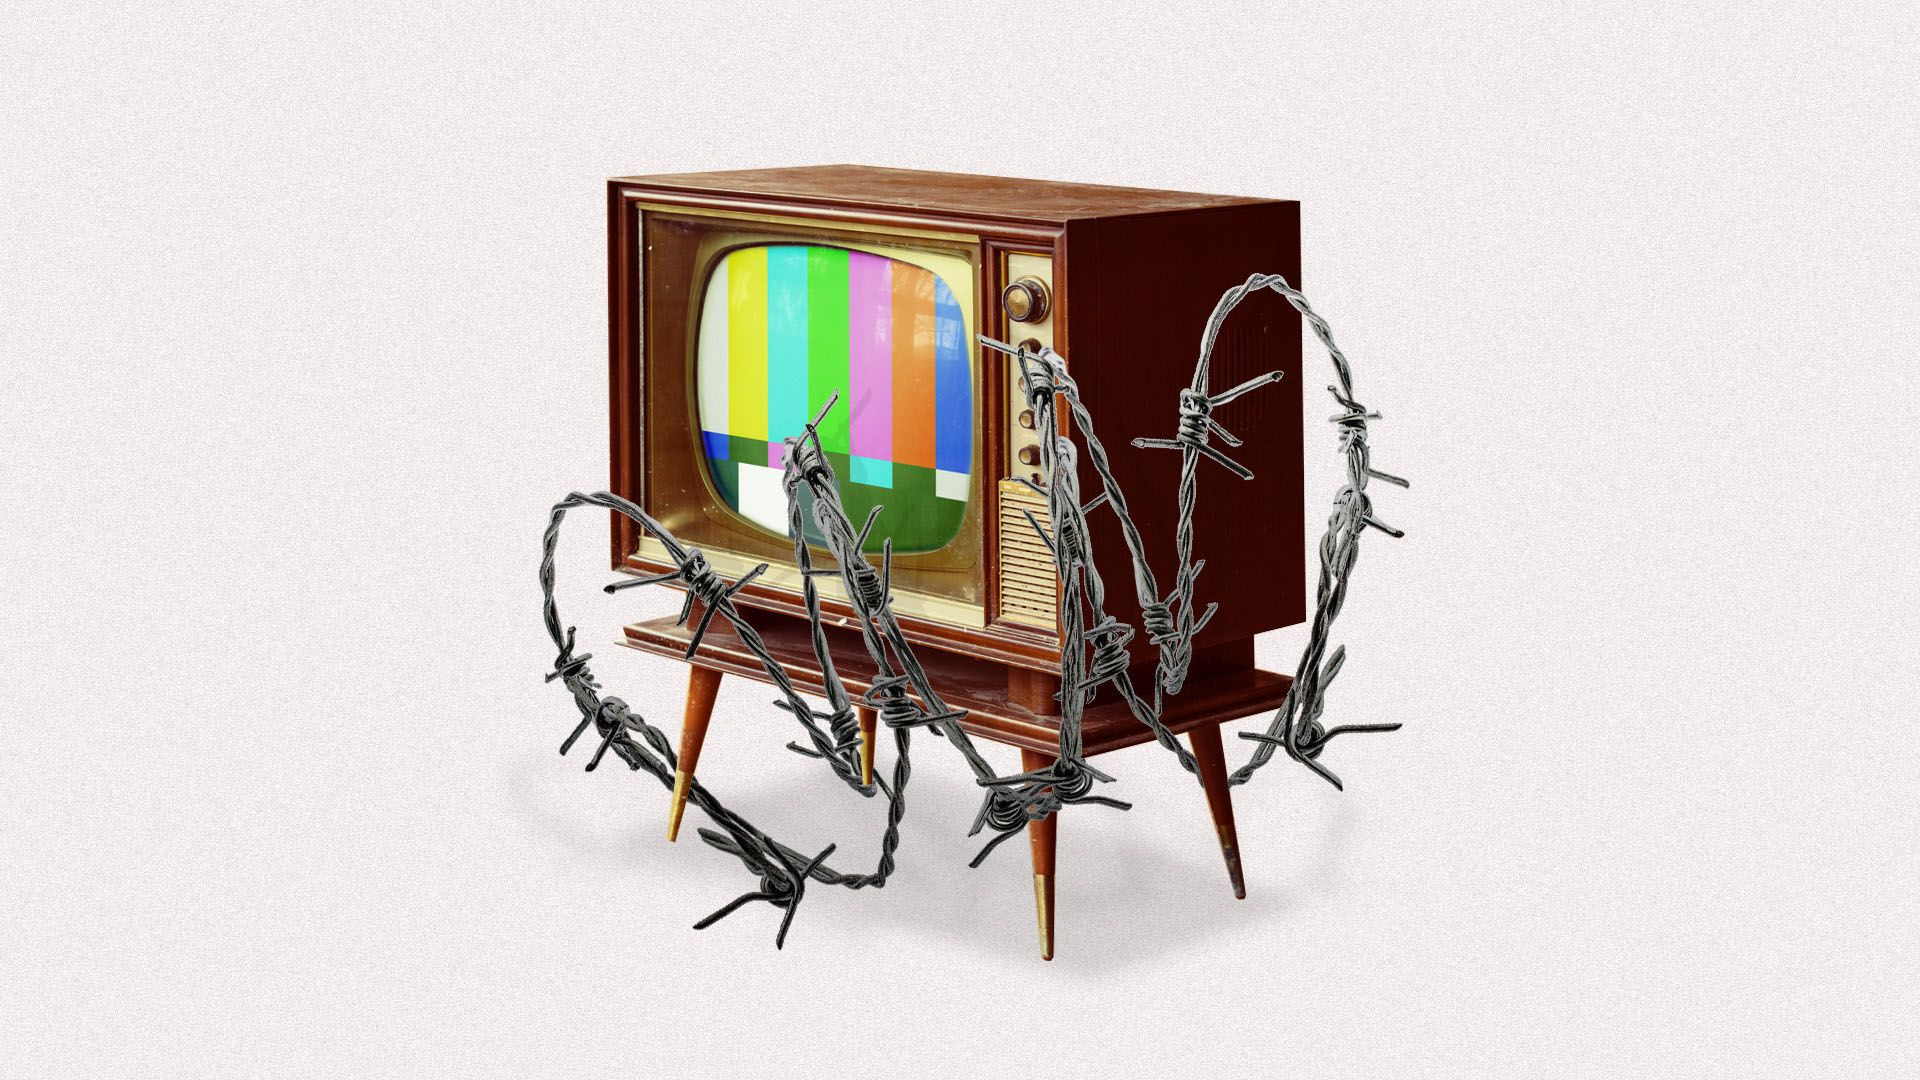 Illustration of a TV covered in barb wire